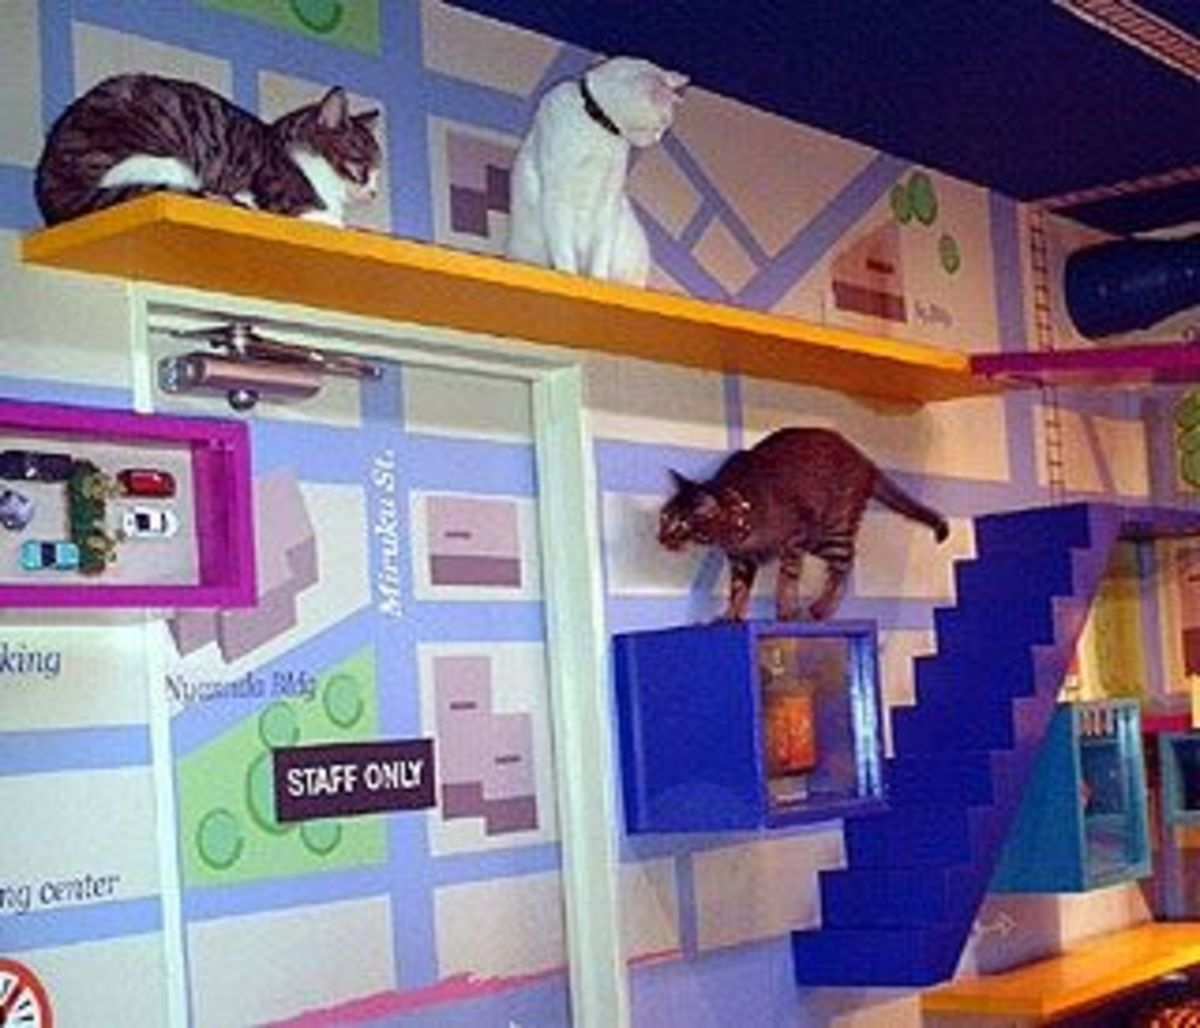 Fun Cat Room Ideas by mi2starsfan